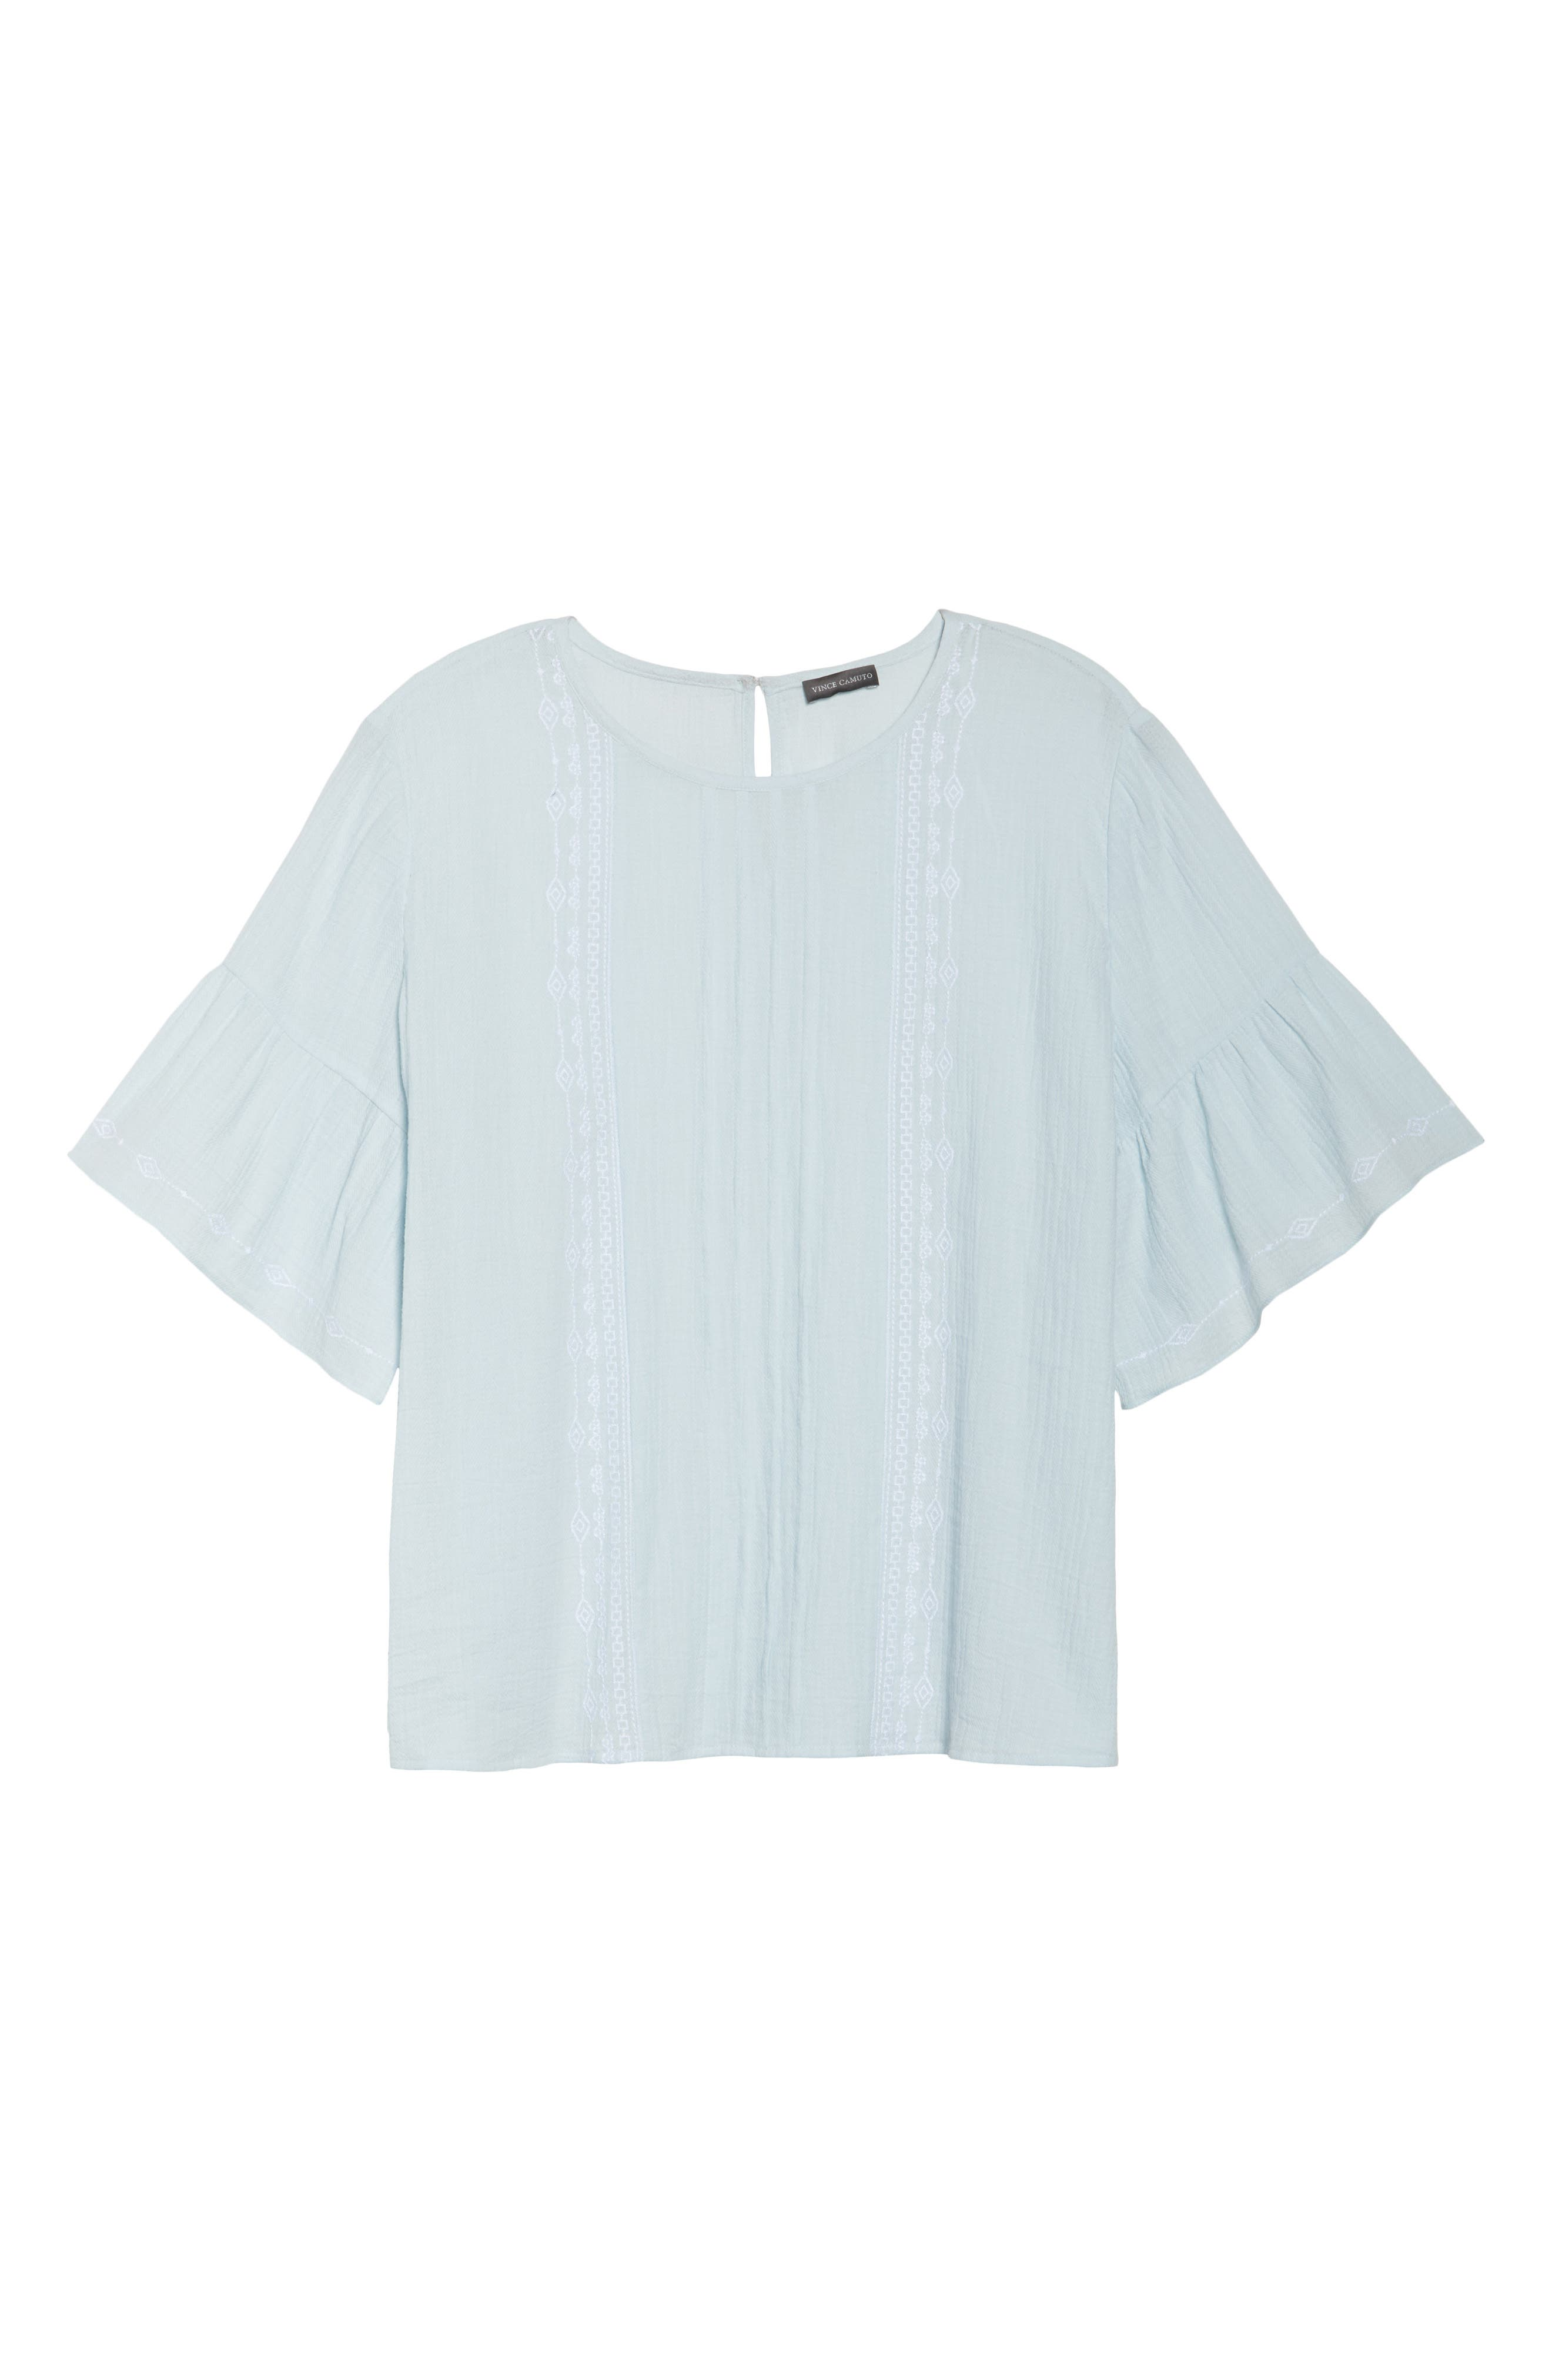 Ruffle Sleeve Embroidered Crinkle Cotton Top,                             Alternate thumbnail 6, color,                             CHALK BLUE